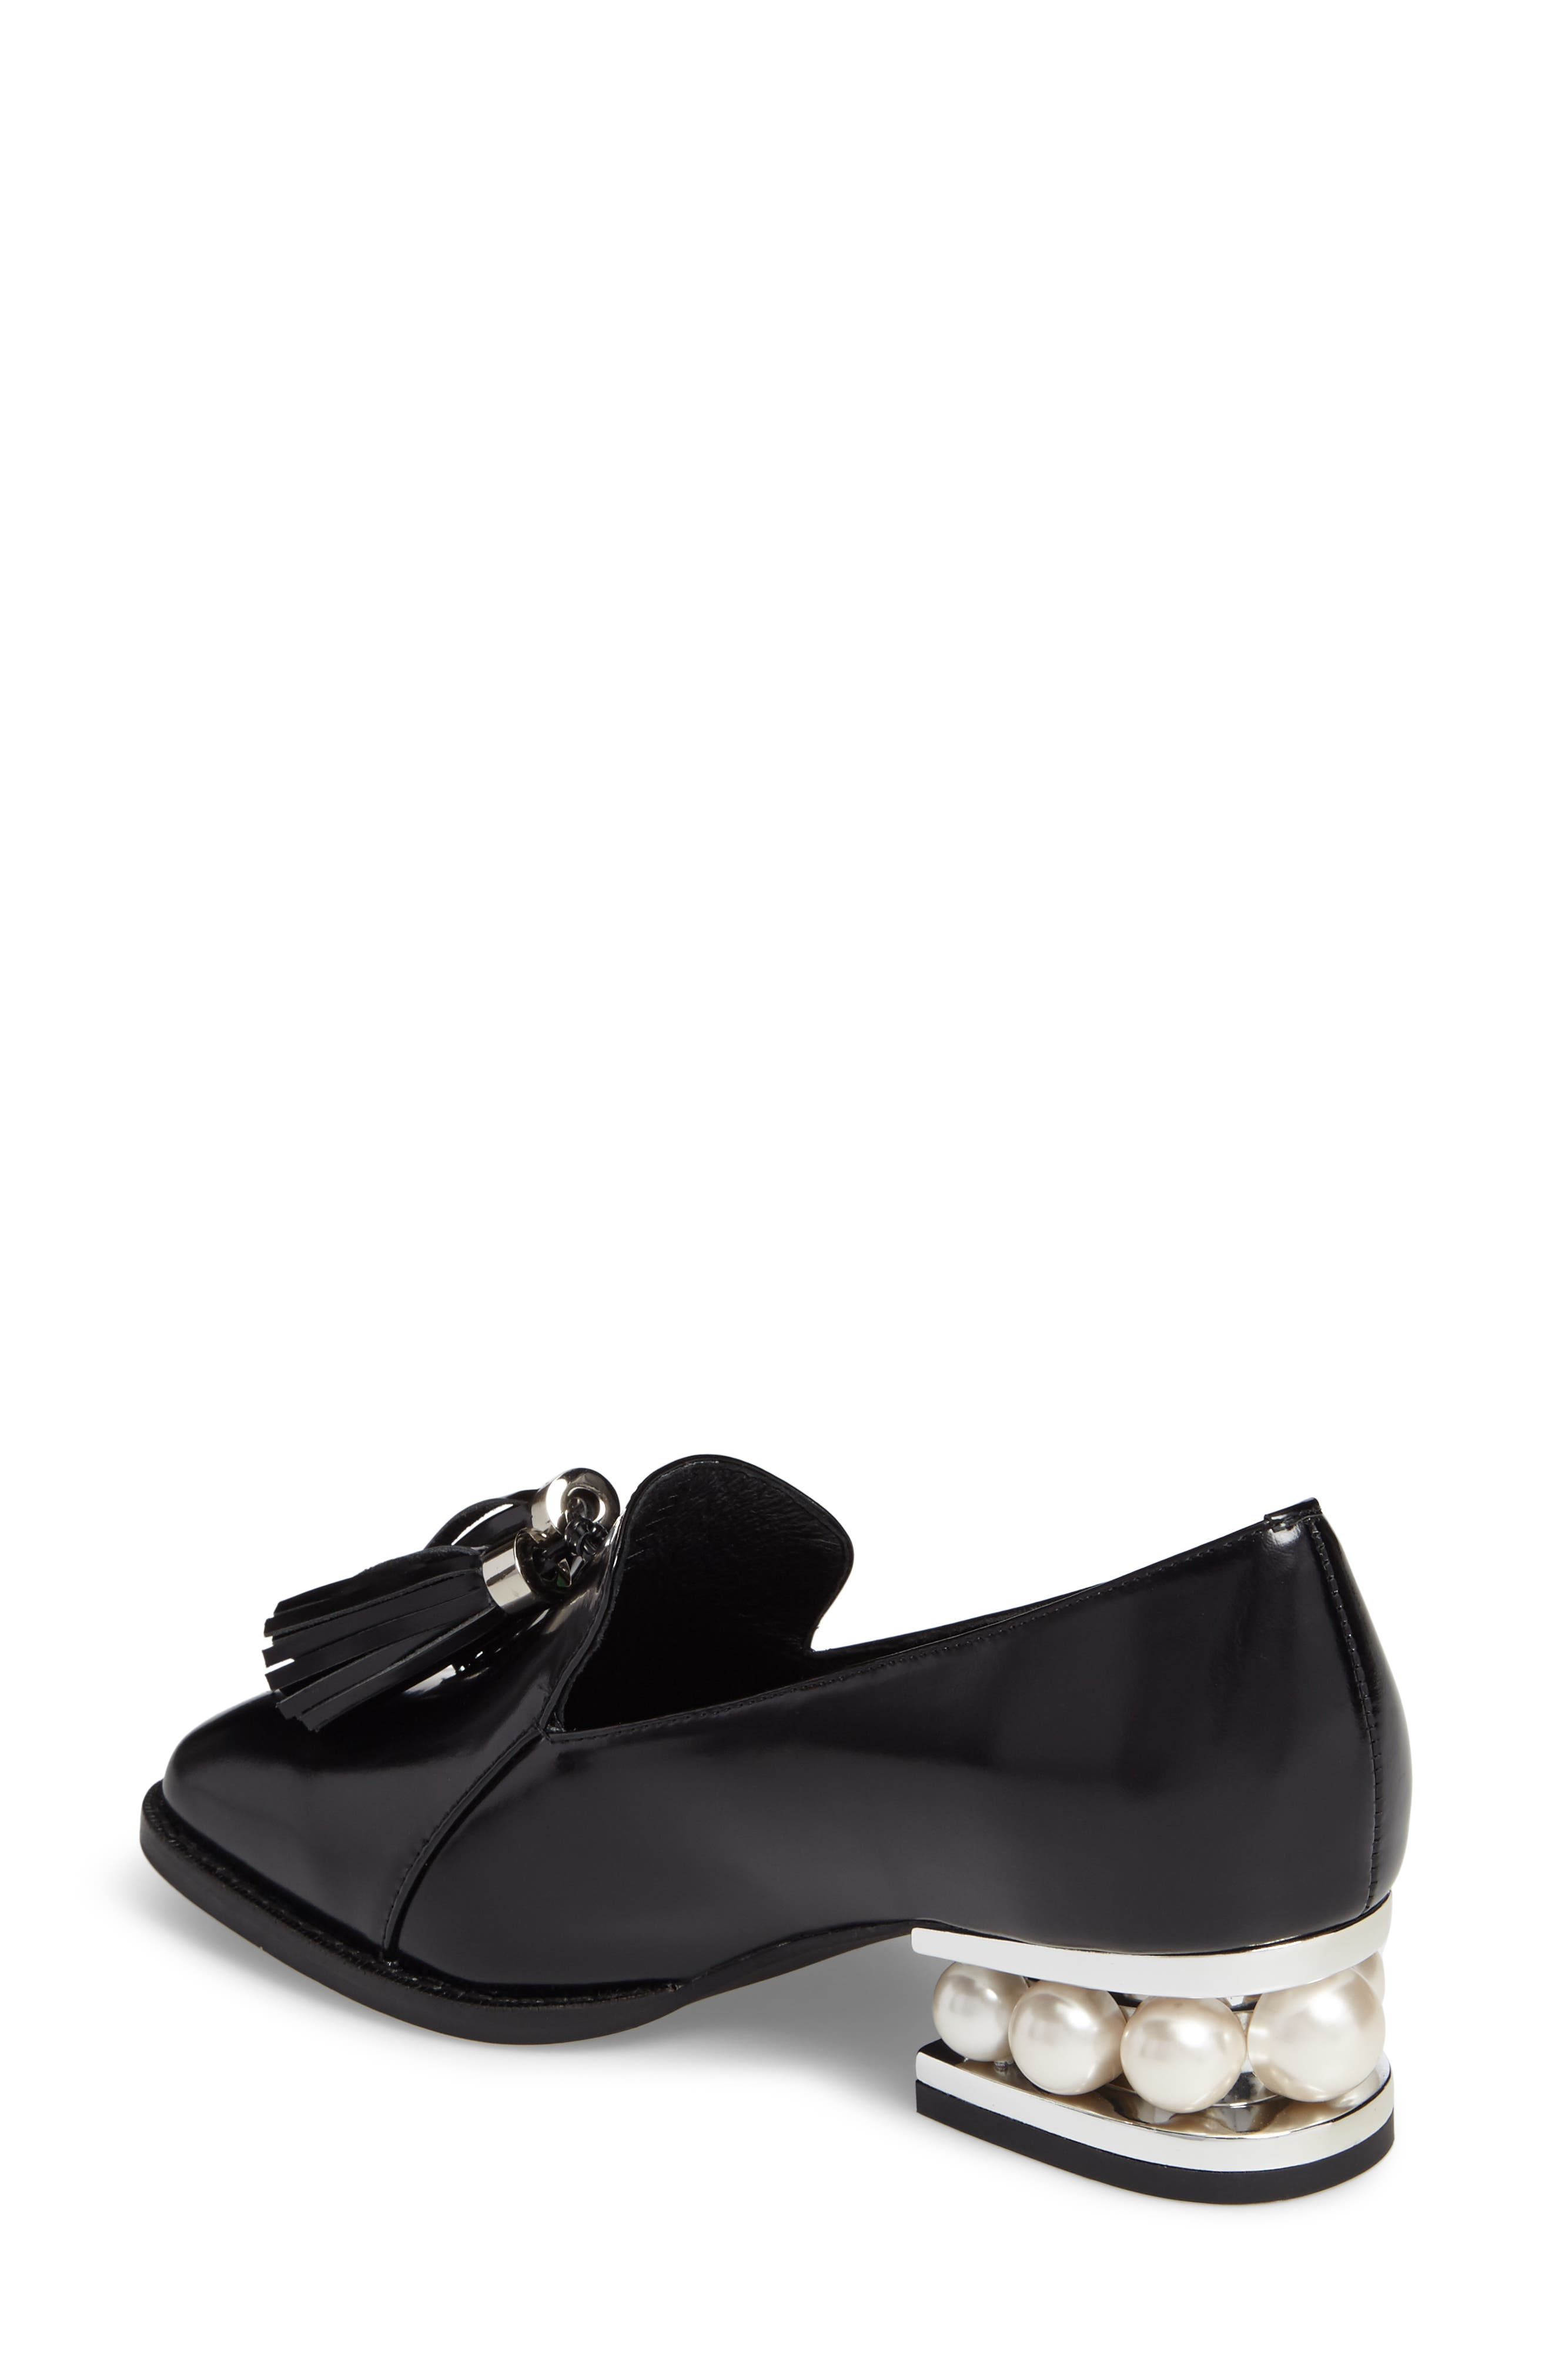 Lawford Pearly Heeled Loafer,                             Alternate thumbnail 2, color,                             001